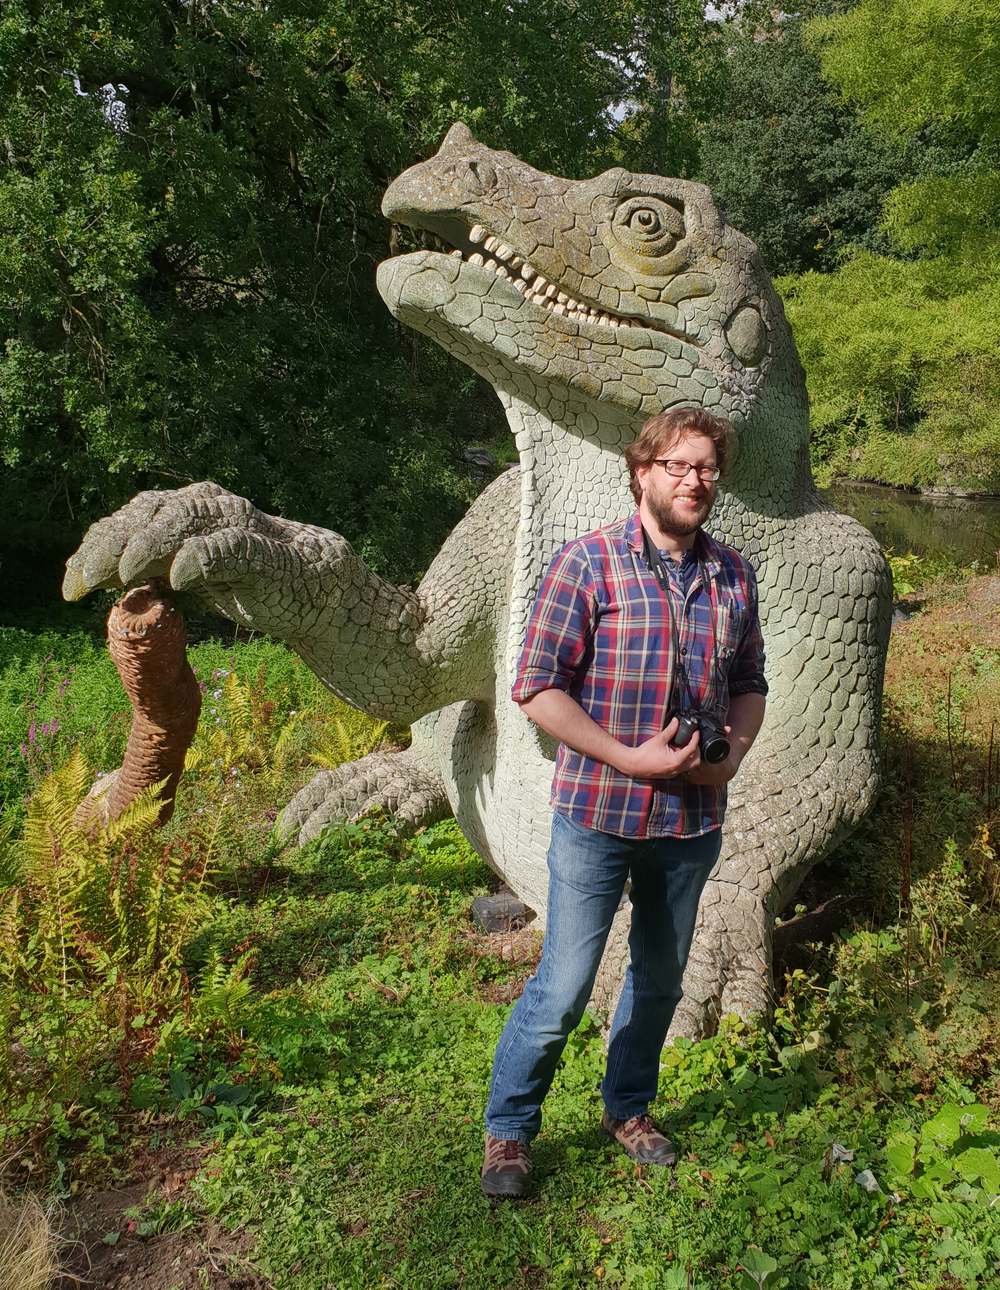 CP-Sept-2018-Darren-and-Iguanodon-1000-px-tiny-Dec-2018-Darren-Naish-Tetrapod-Zoology.jpg